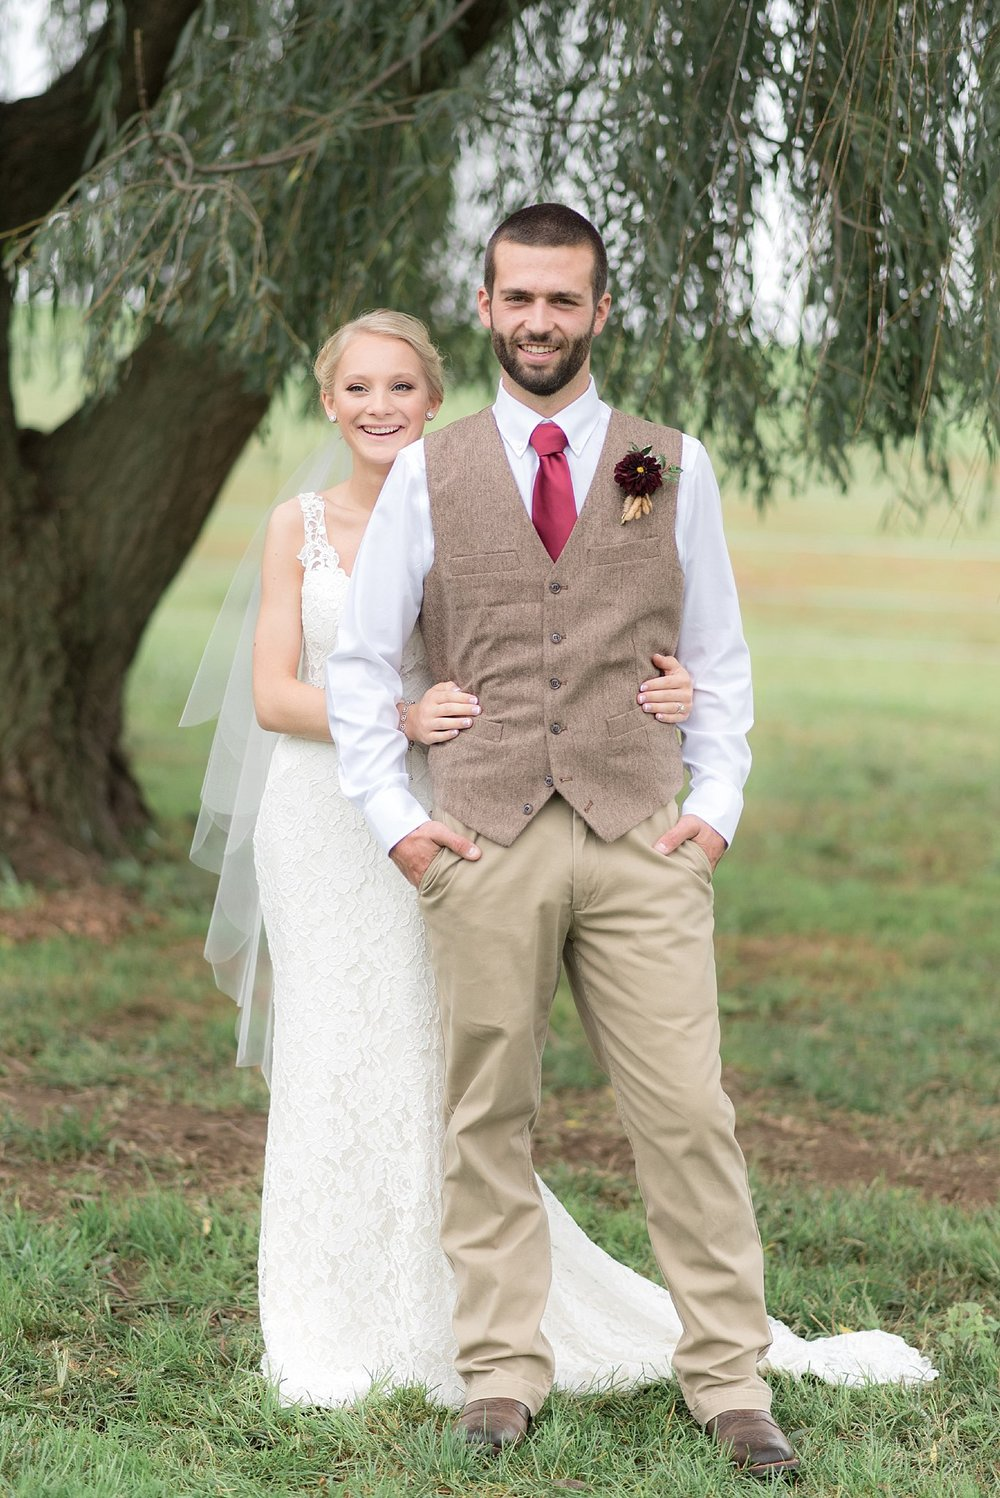 Rustic Chic Lancaster Count farm wedding photographer photo_0075.jpg